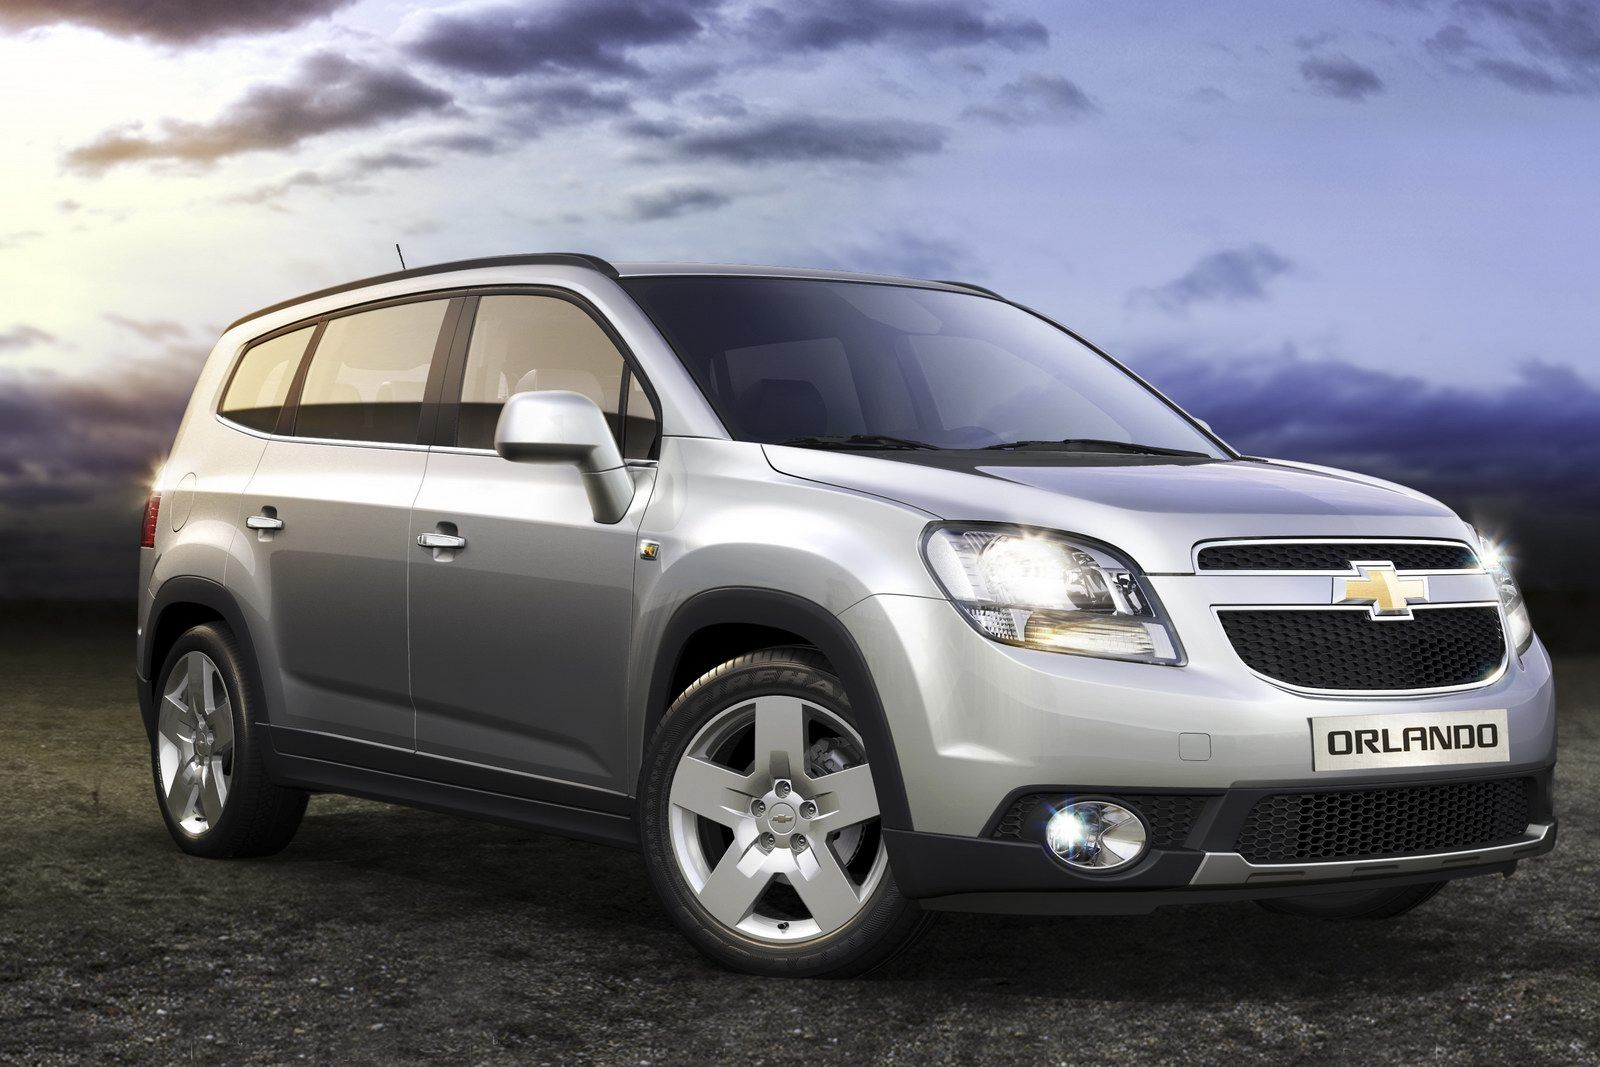 2012 Chevrolet Orlando Arrives In Canada Free Hd Wallpaper